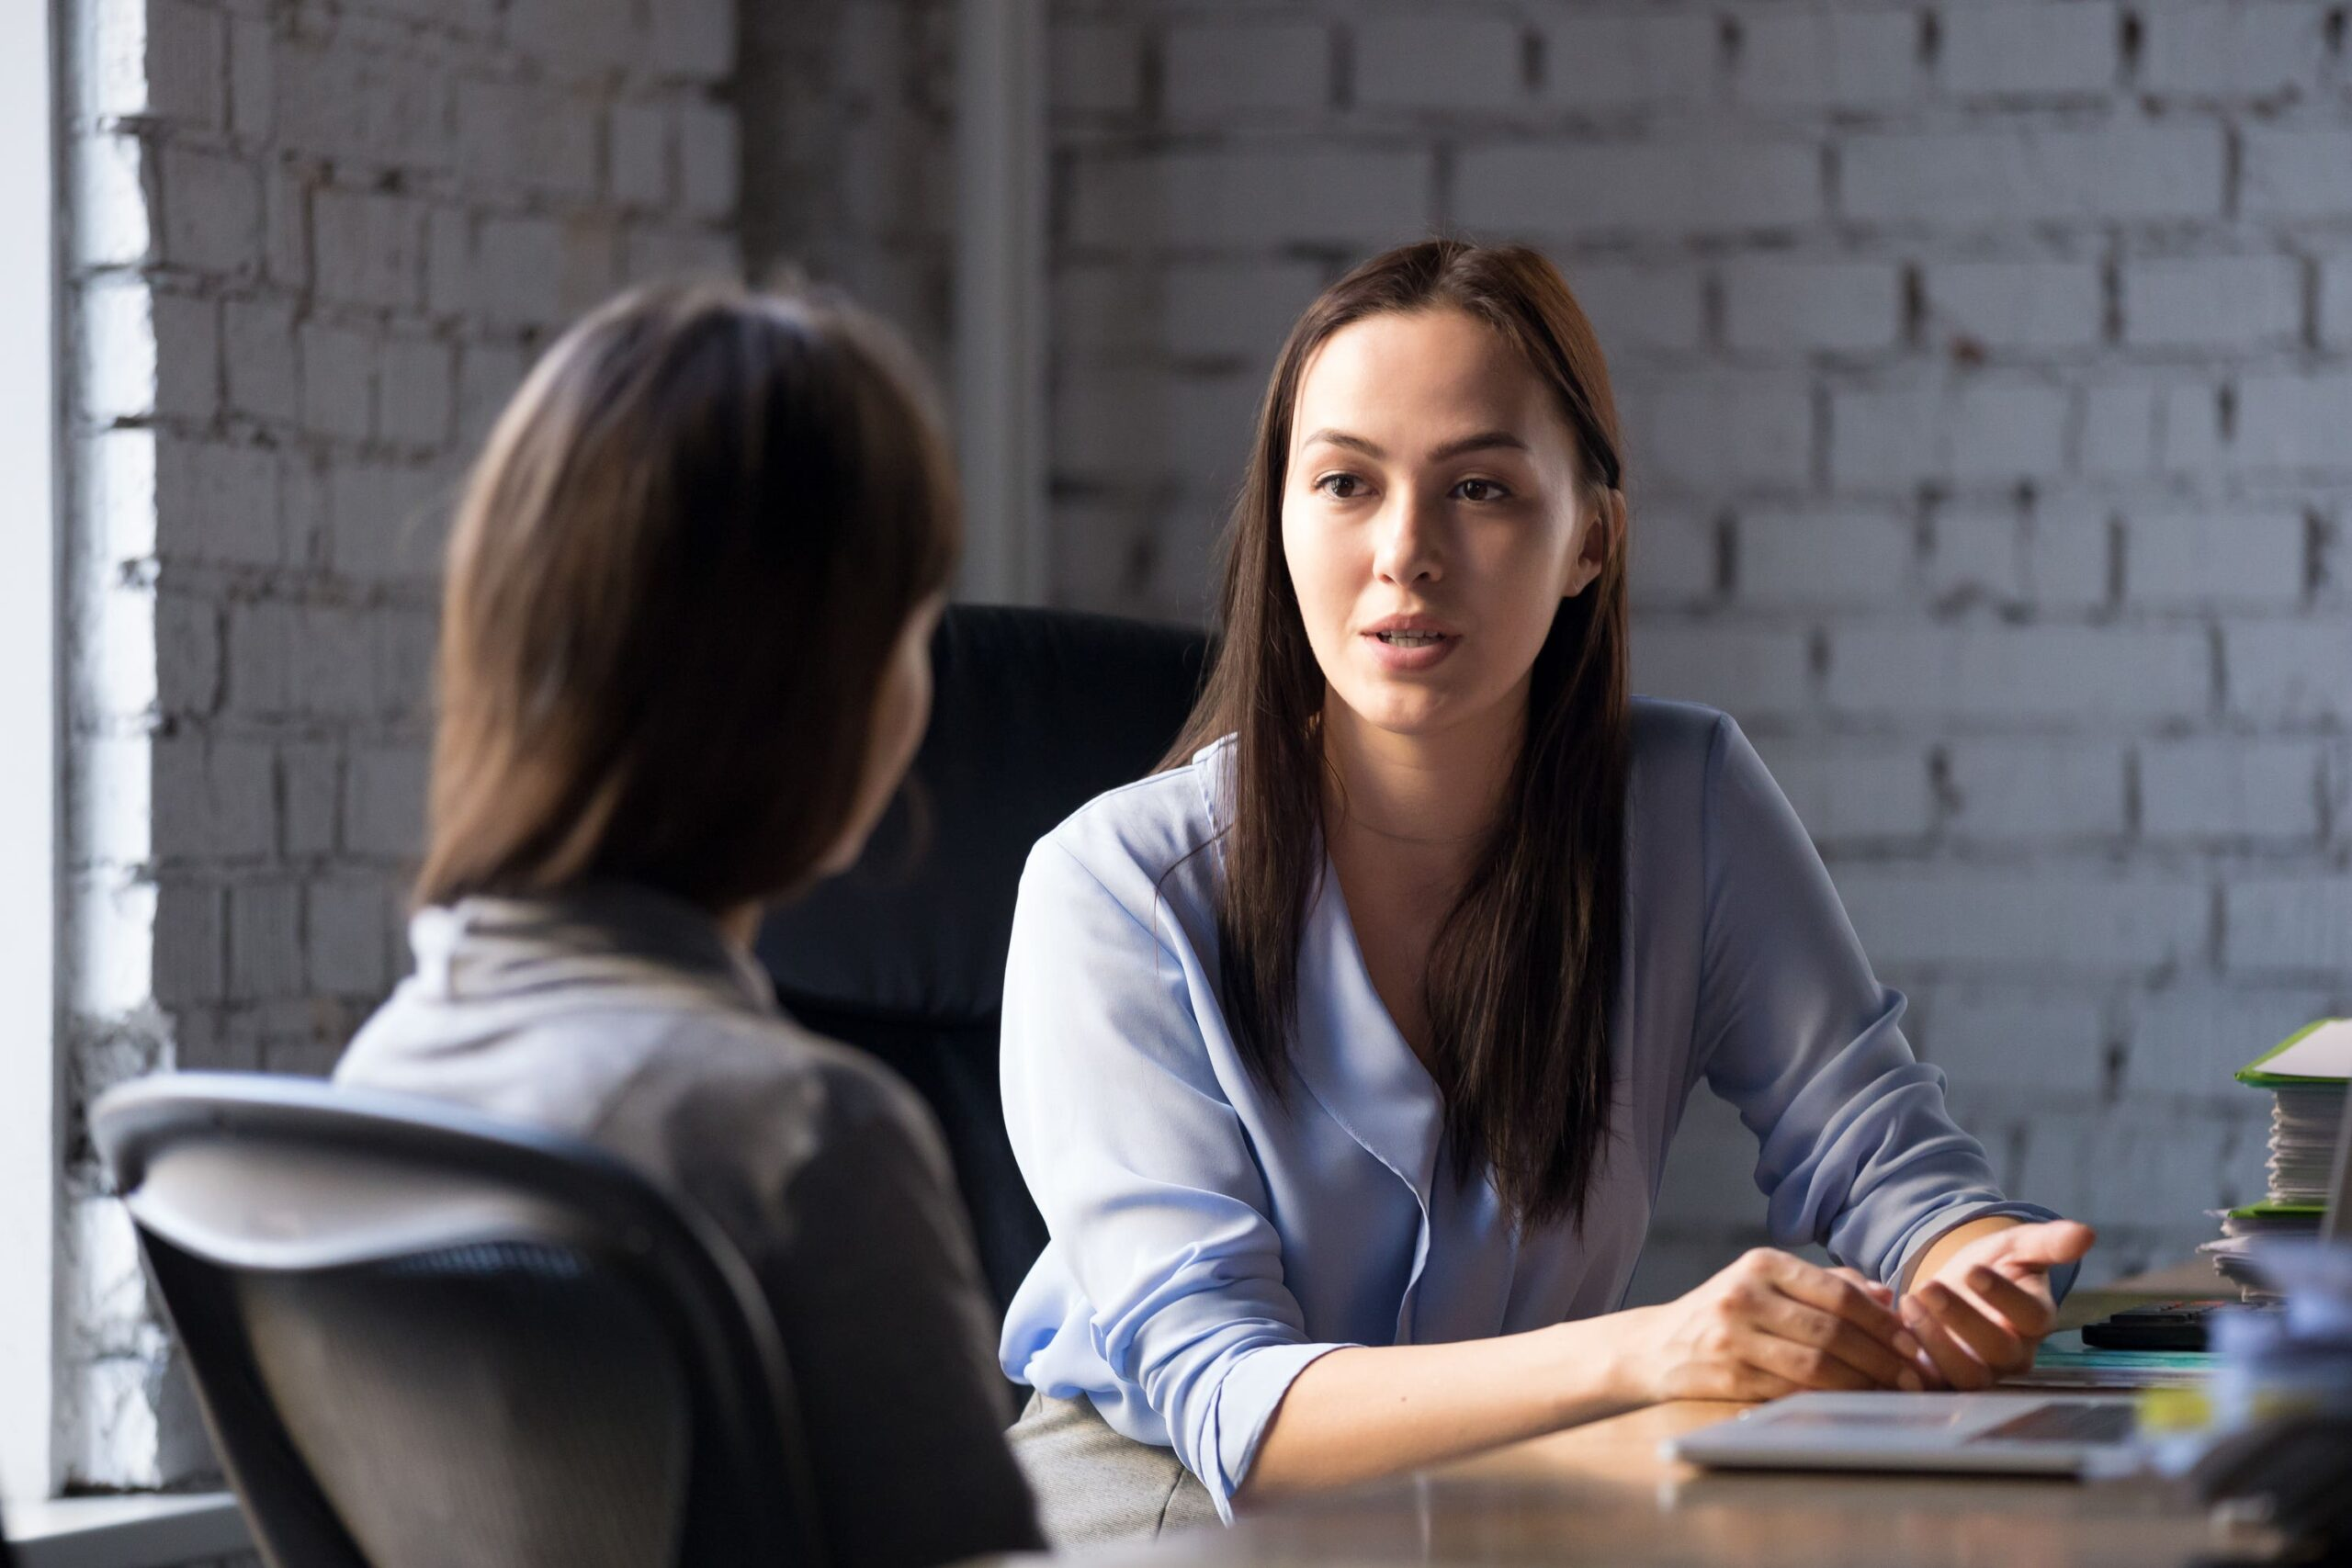 Talk To Your Boss About Taking Time Off For Fertility Treatment